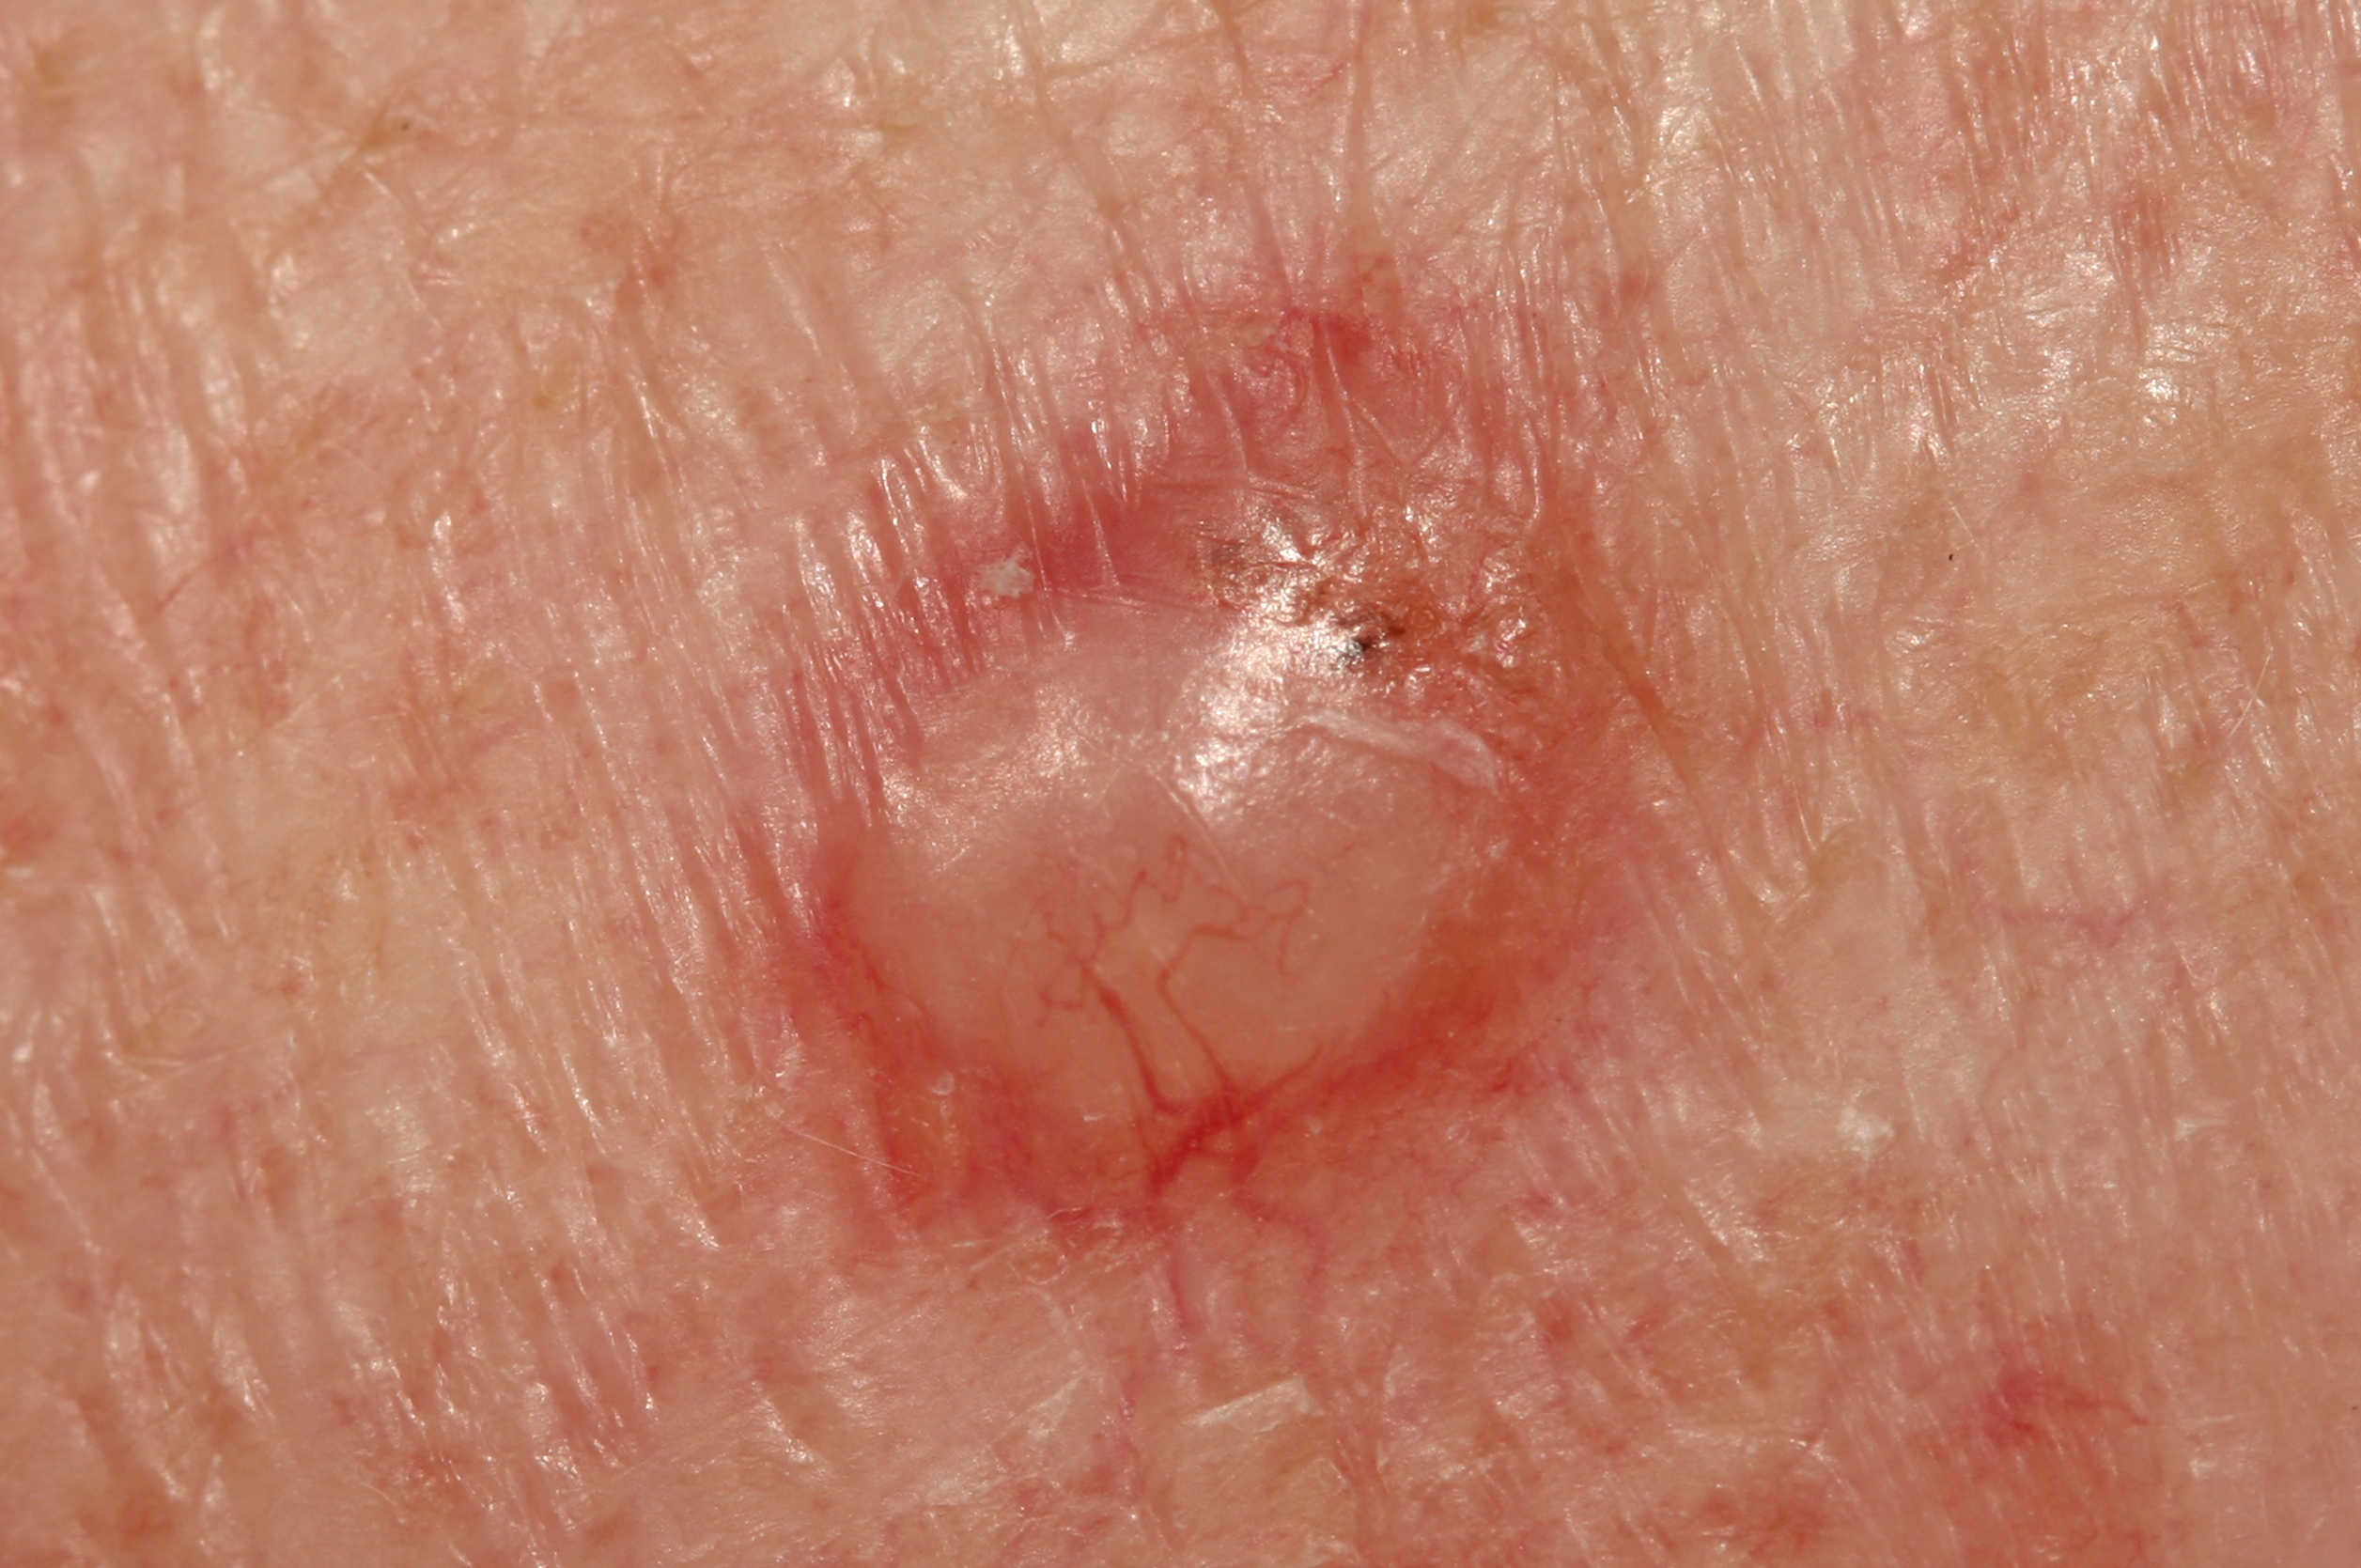 What Are the Odds of a Basal Cell Carcinoma Metastasizing?